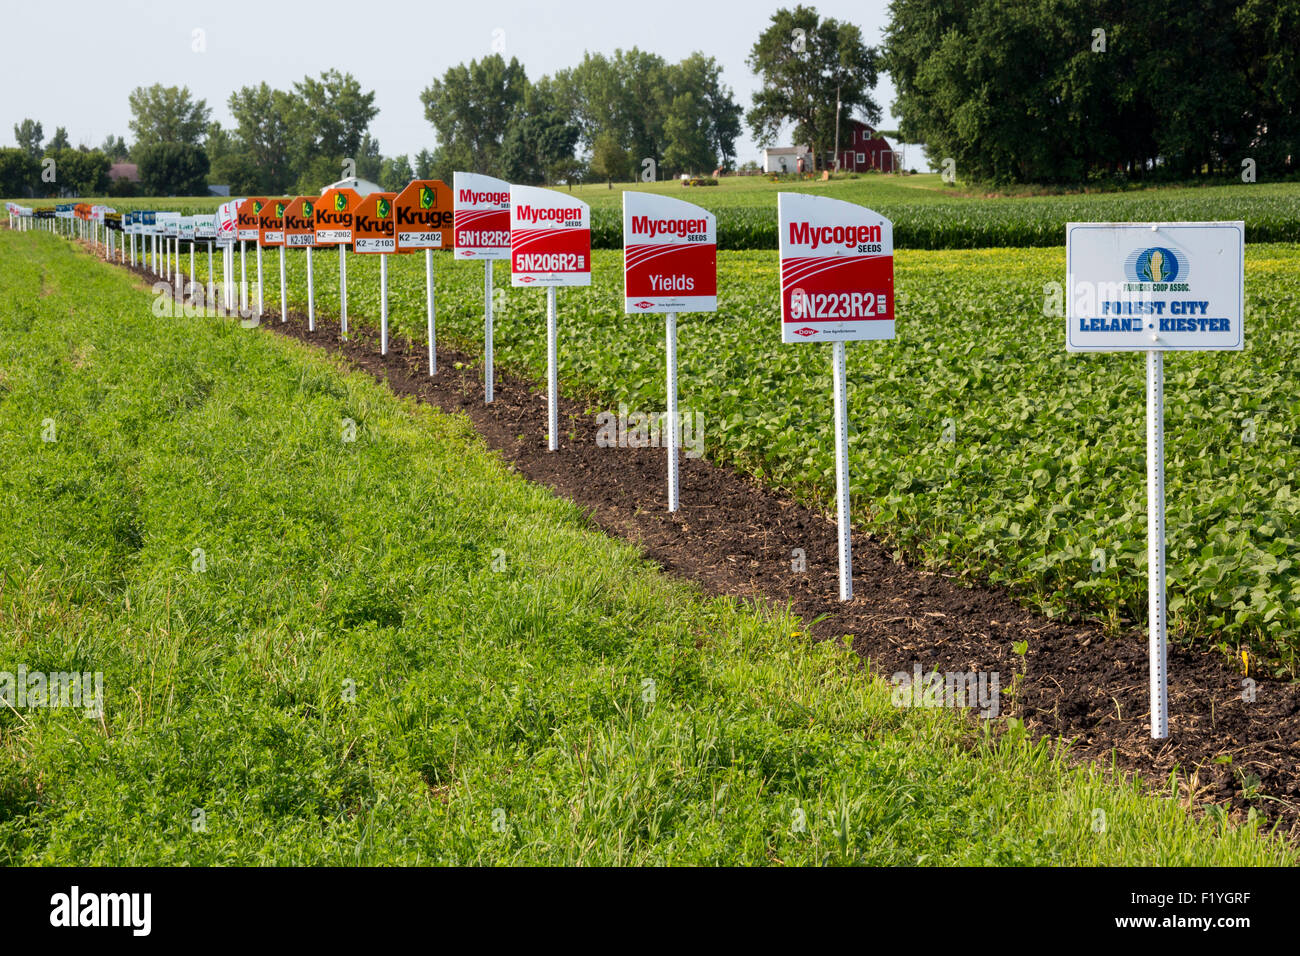 Forest City, Iowa - Signs mark different crop varieties in a soybean field, including crops genetically modified. - Stock Image